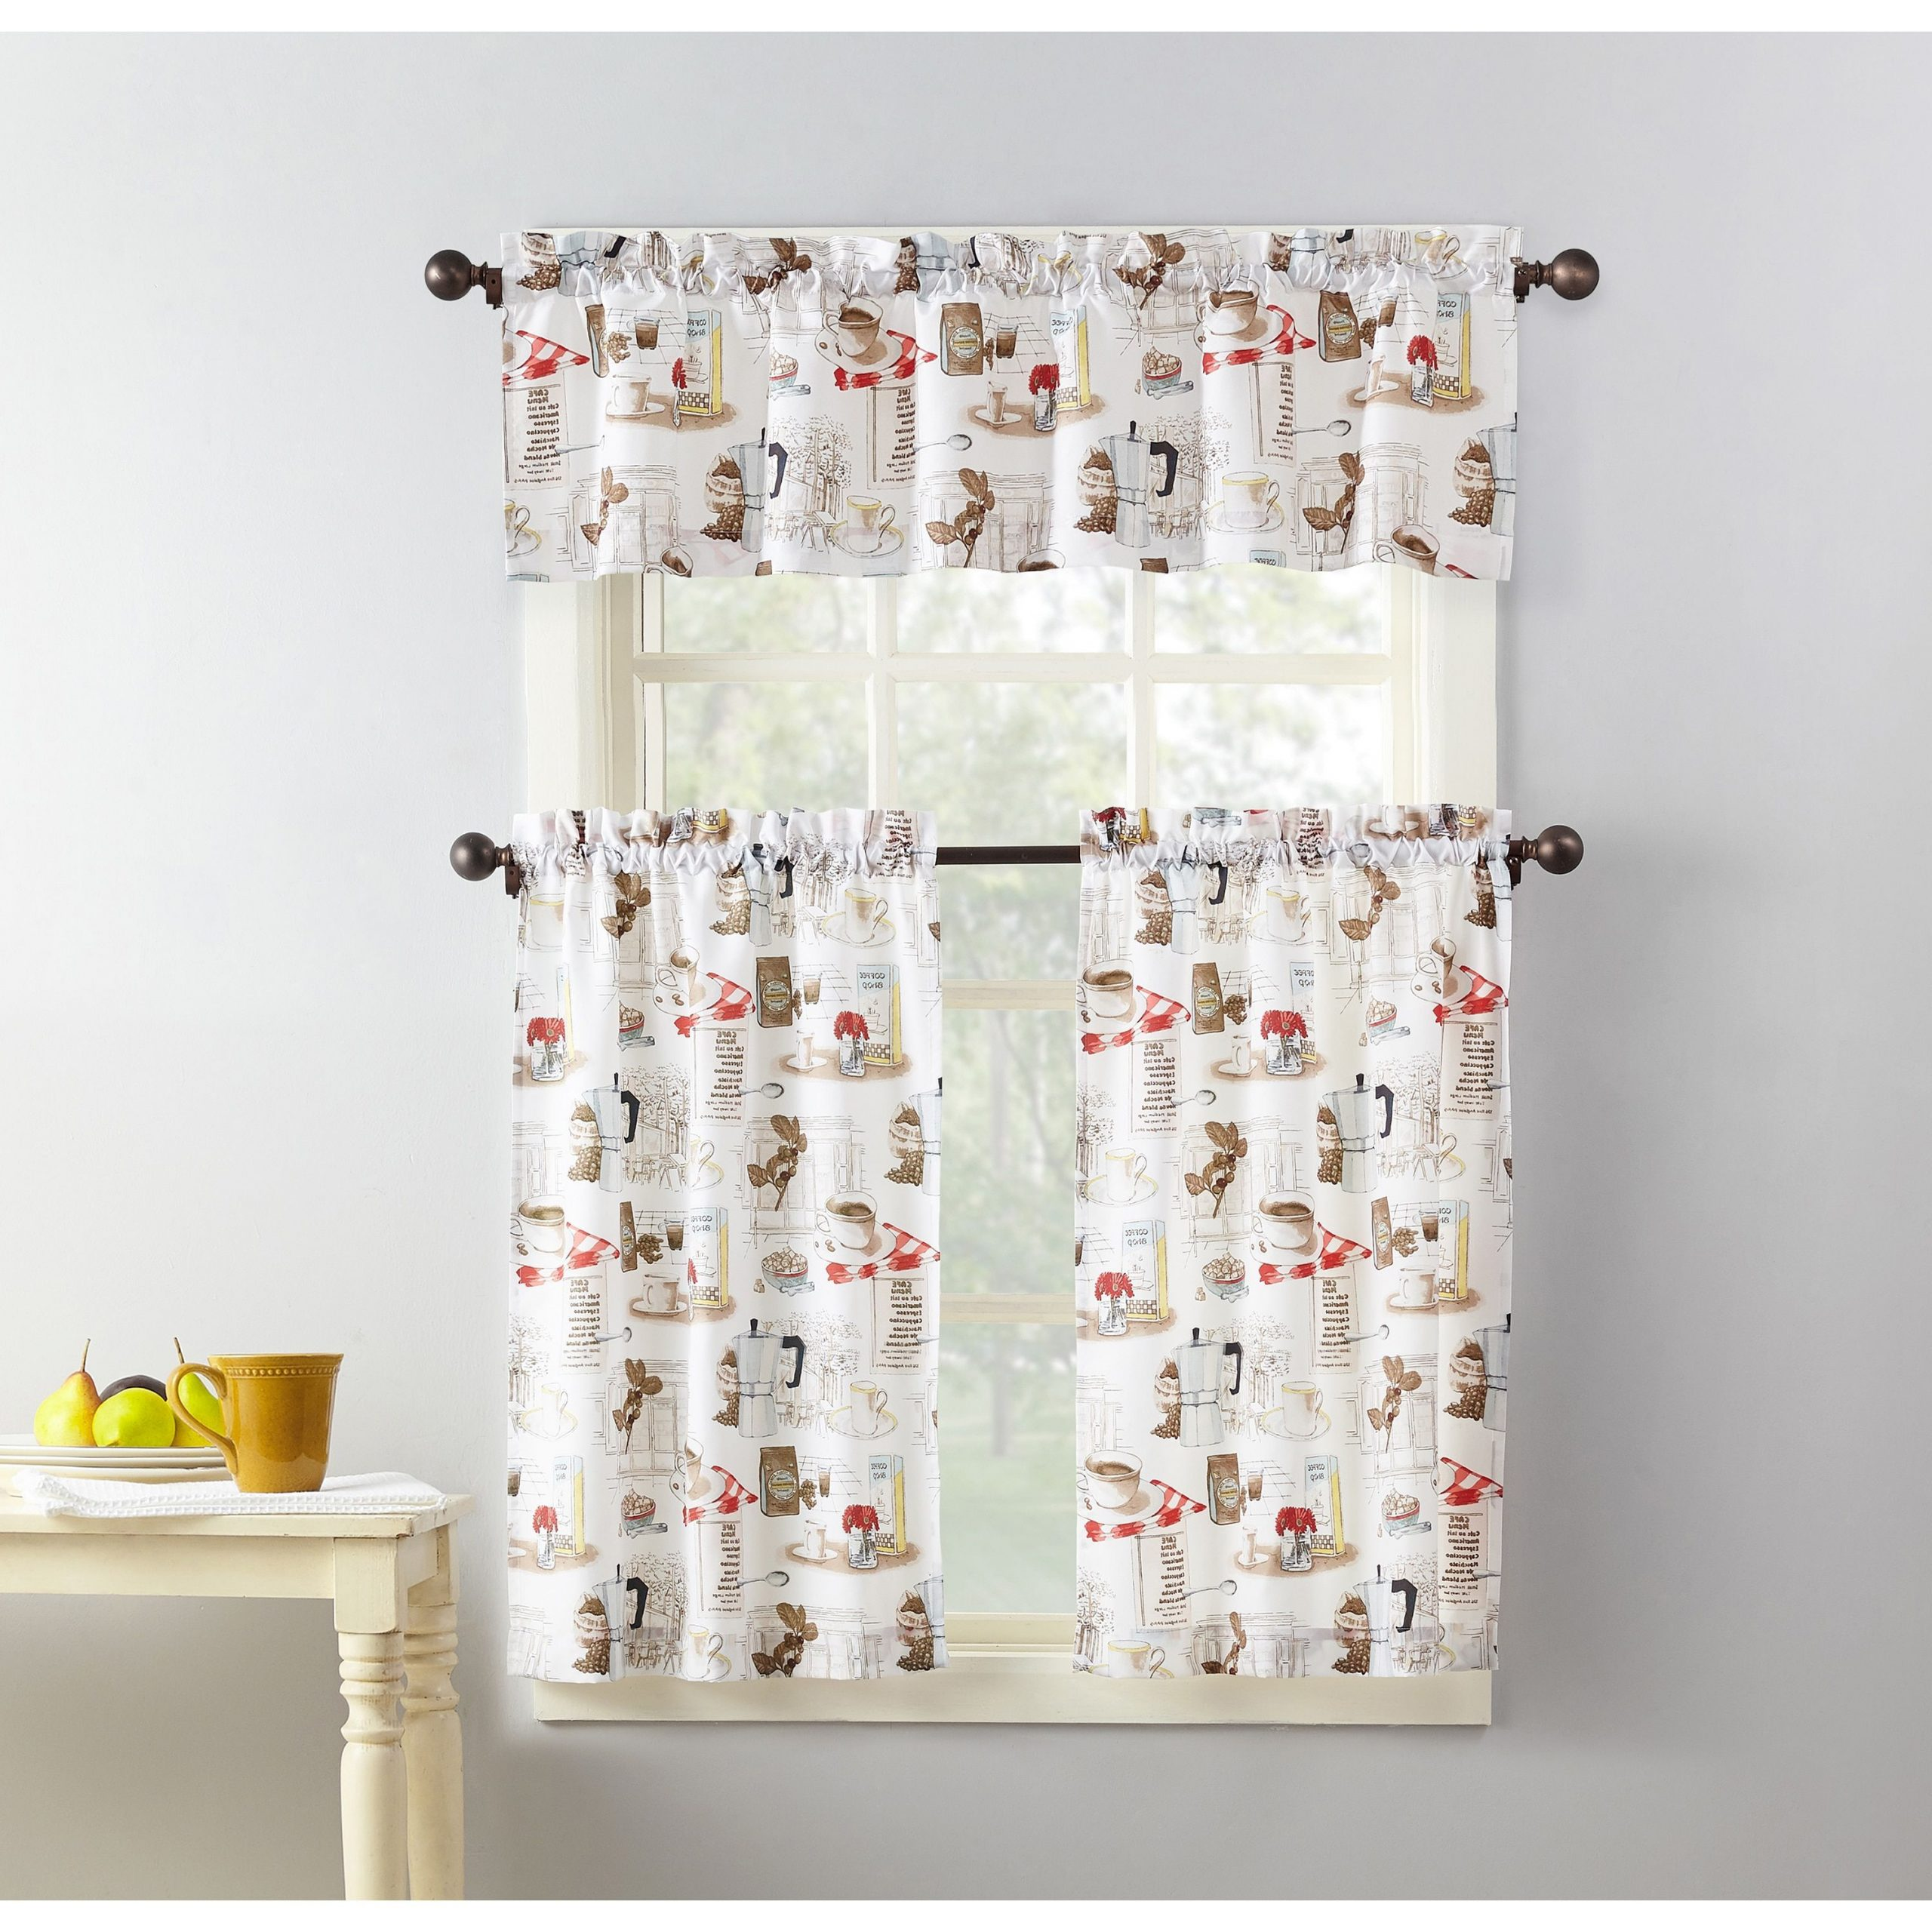 Most Current No. 918 Brew Coffee Shop Microfiber 3 Piece Kitchen Curtain Within Microfiber 3 Piece Kitchen Curtain Valance And Tiers Sets (Gallery 2 of 20)